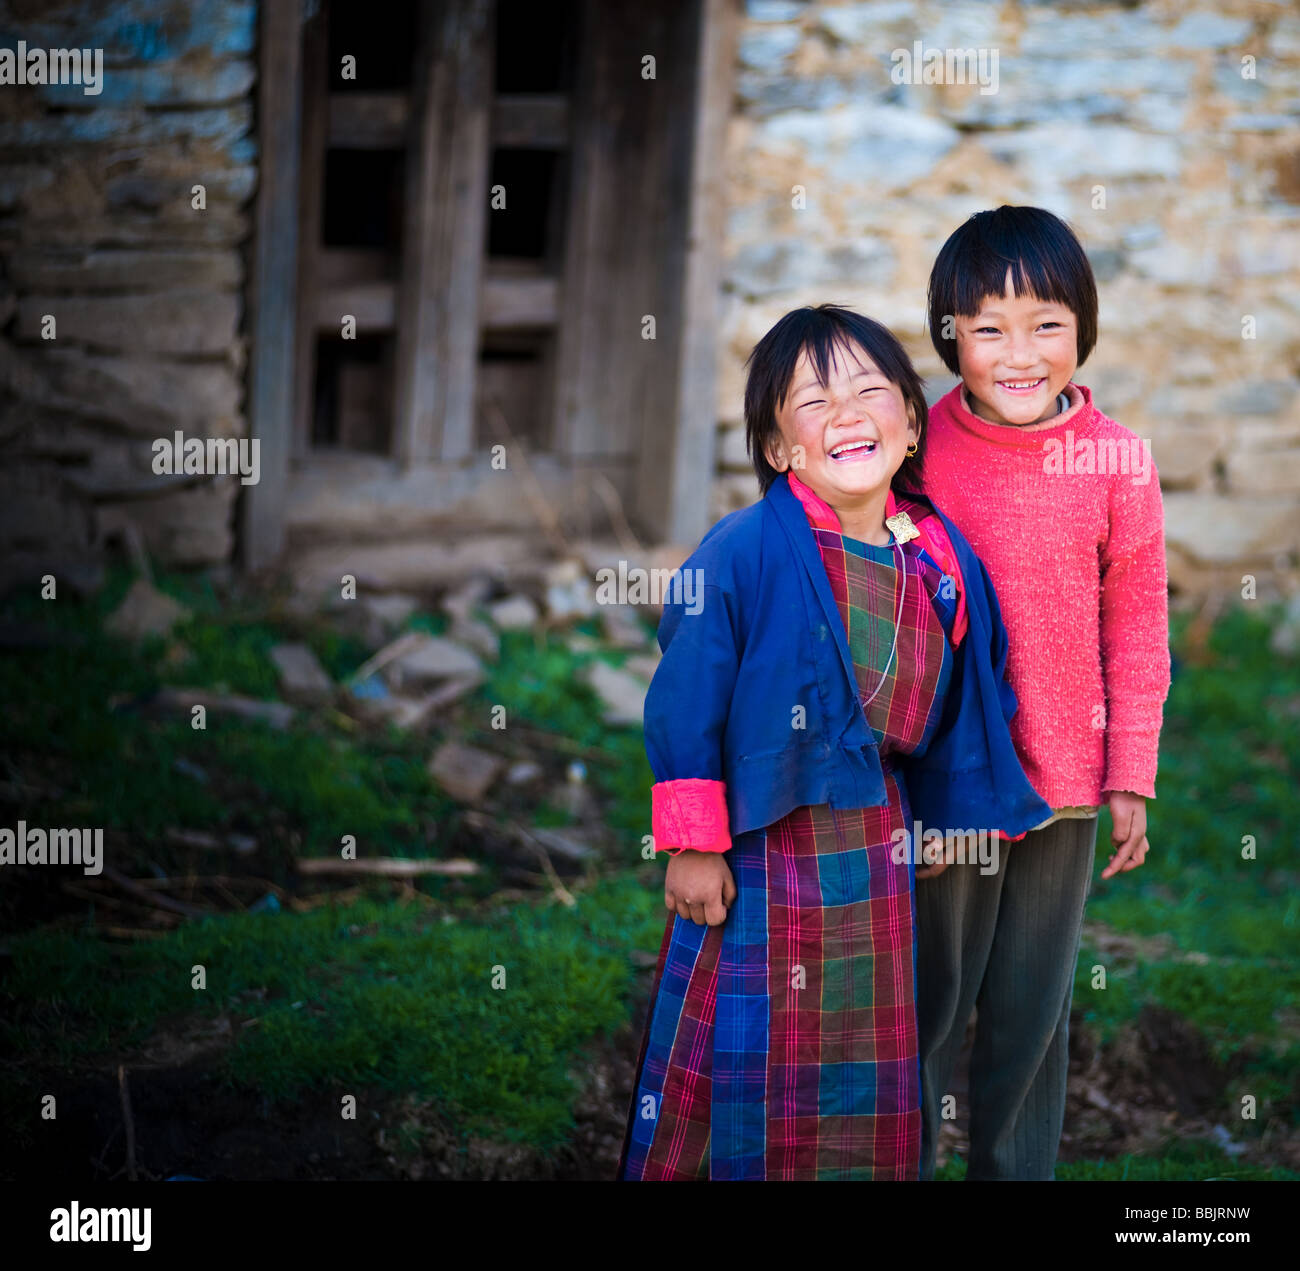 Bhutanese children - Bhutan - Stock Image